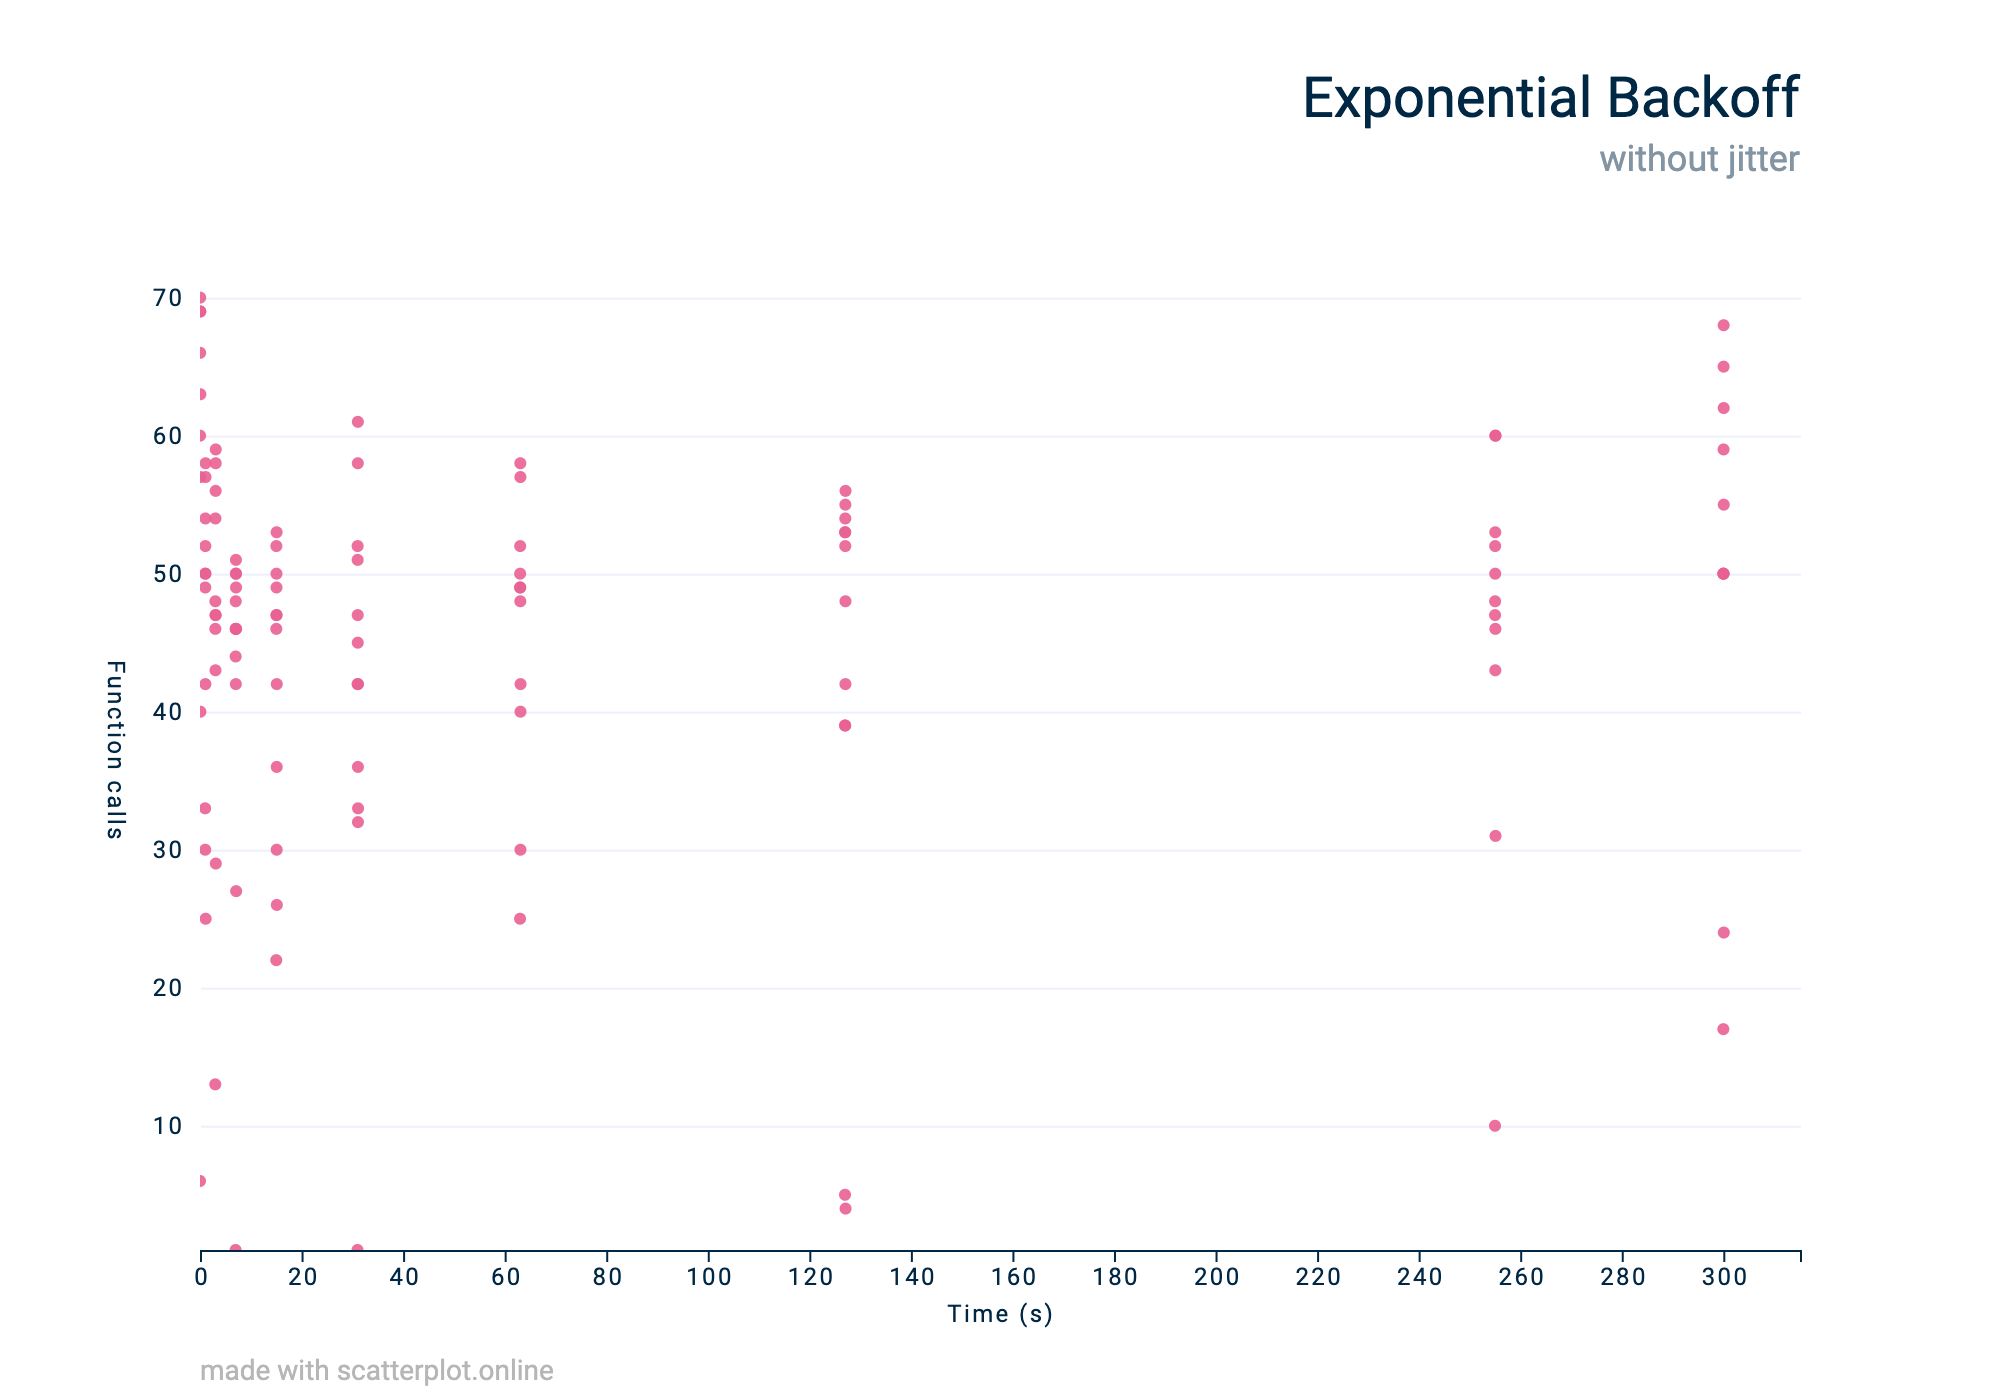 A visualisation of a traffic pattern using exponential backoff